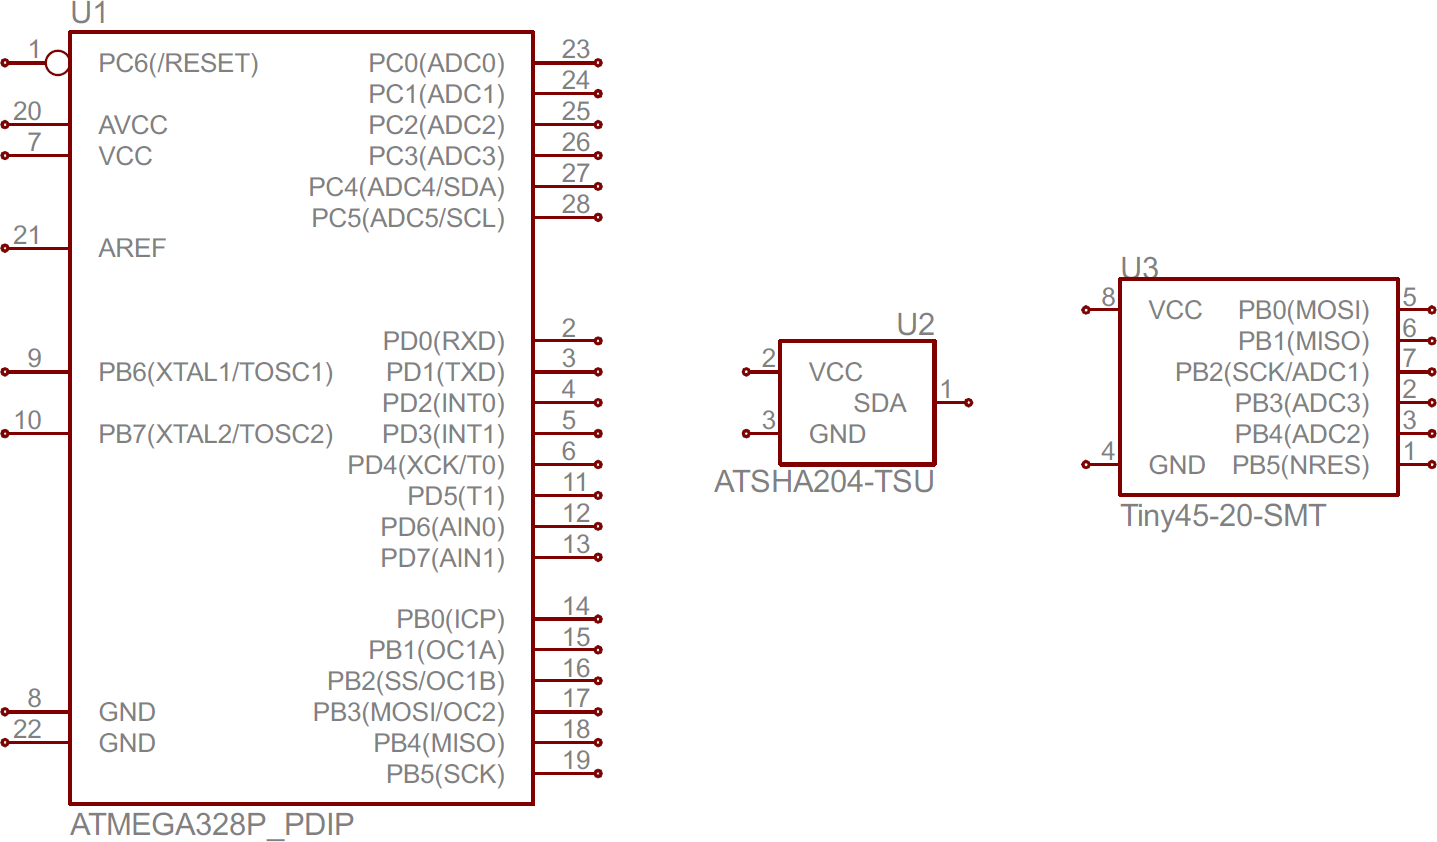 How To Read A Schematic At Amp T Phone Wiring Diagram Atmega328 Atsha204 And Attiny45 Ic Symbols For